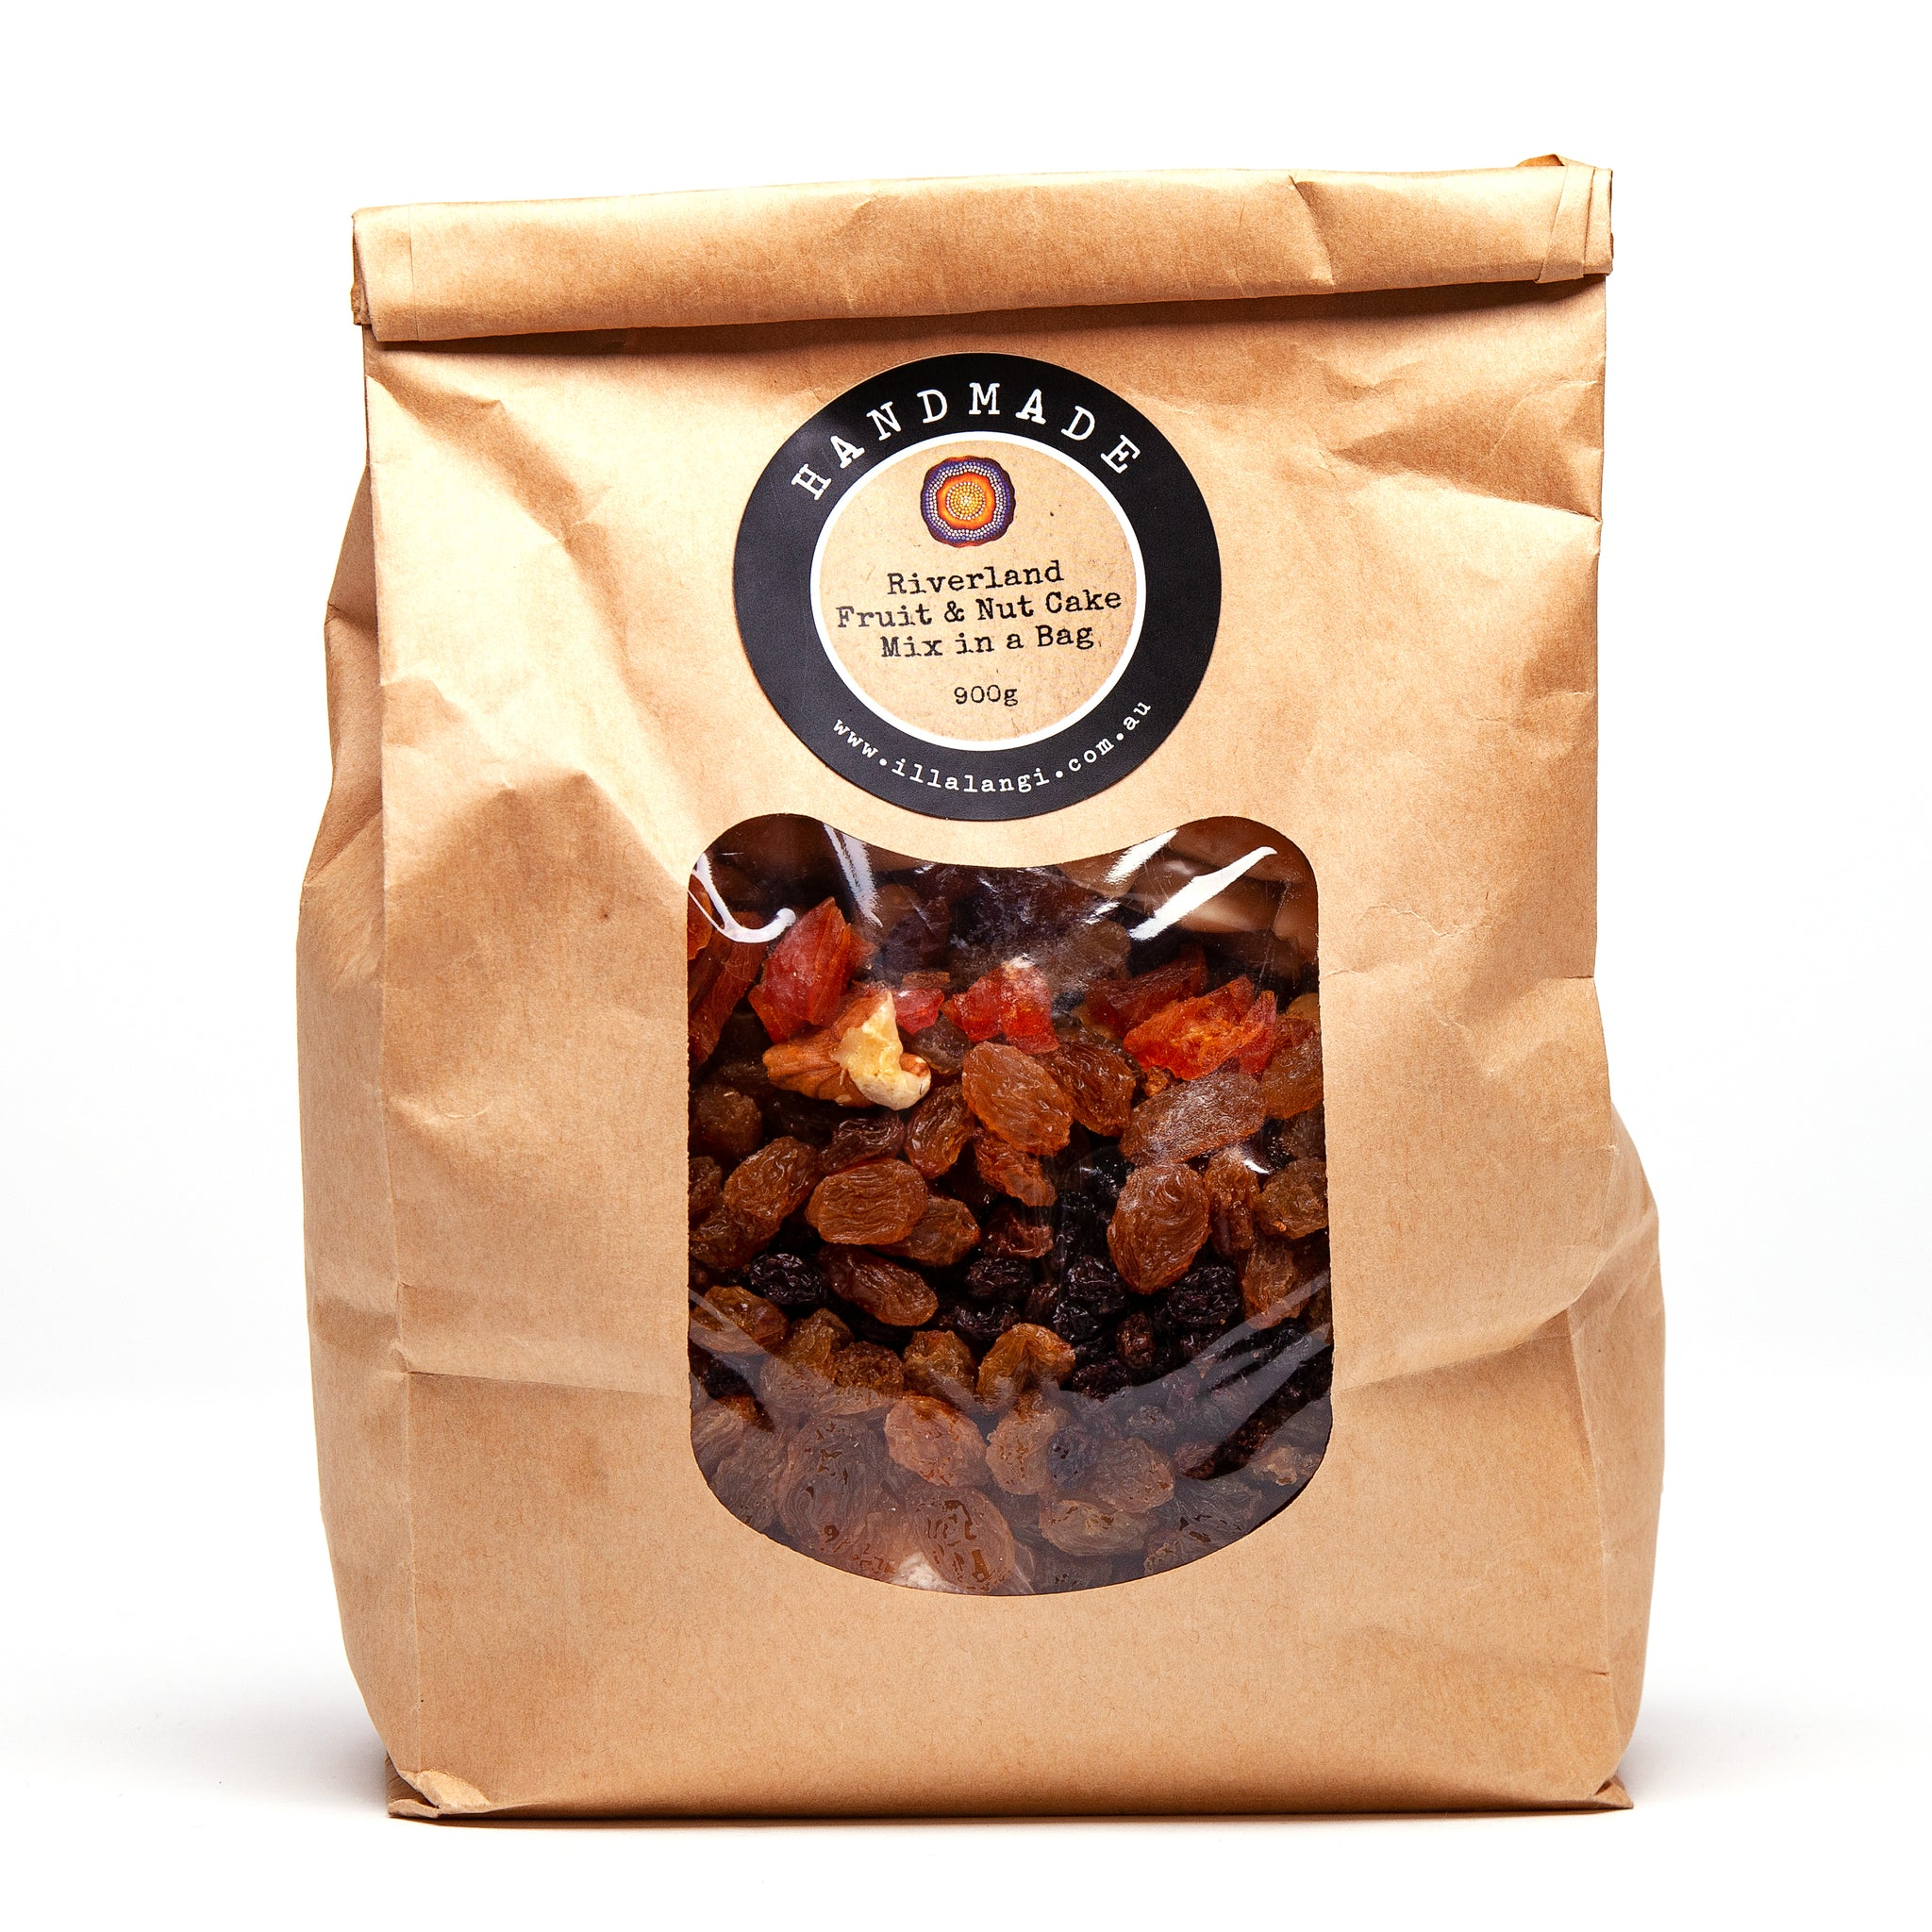 Illalangi Riverland Fruit & Nut Cake Mix in a bag